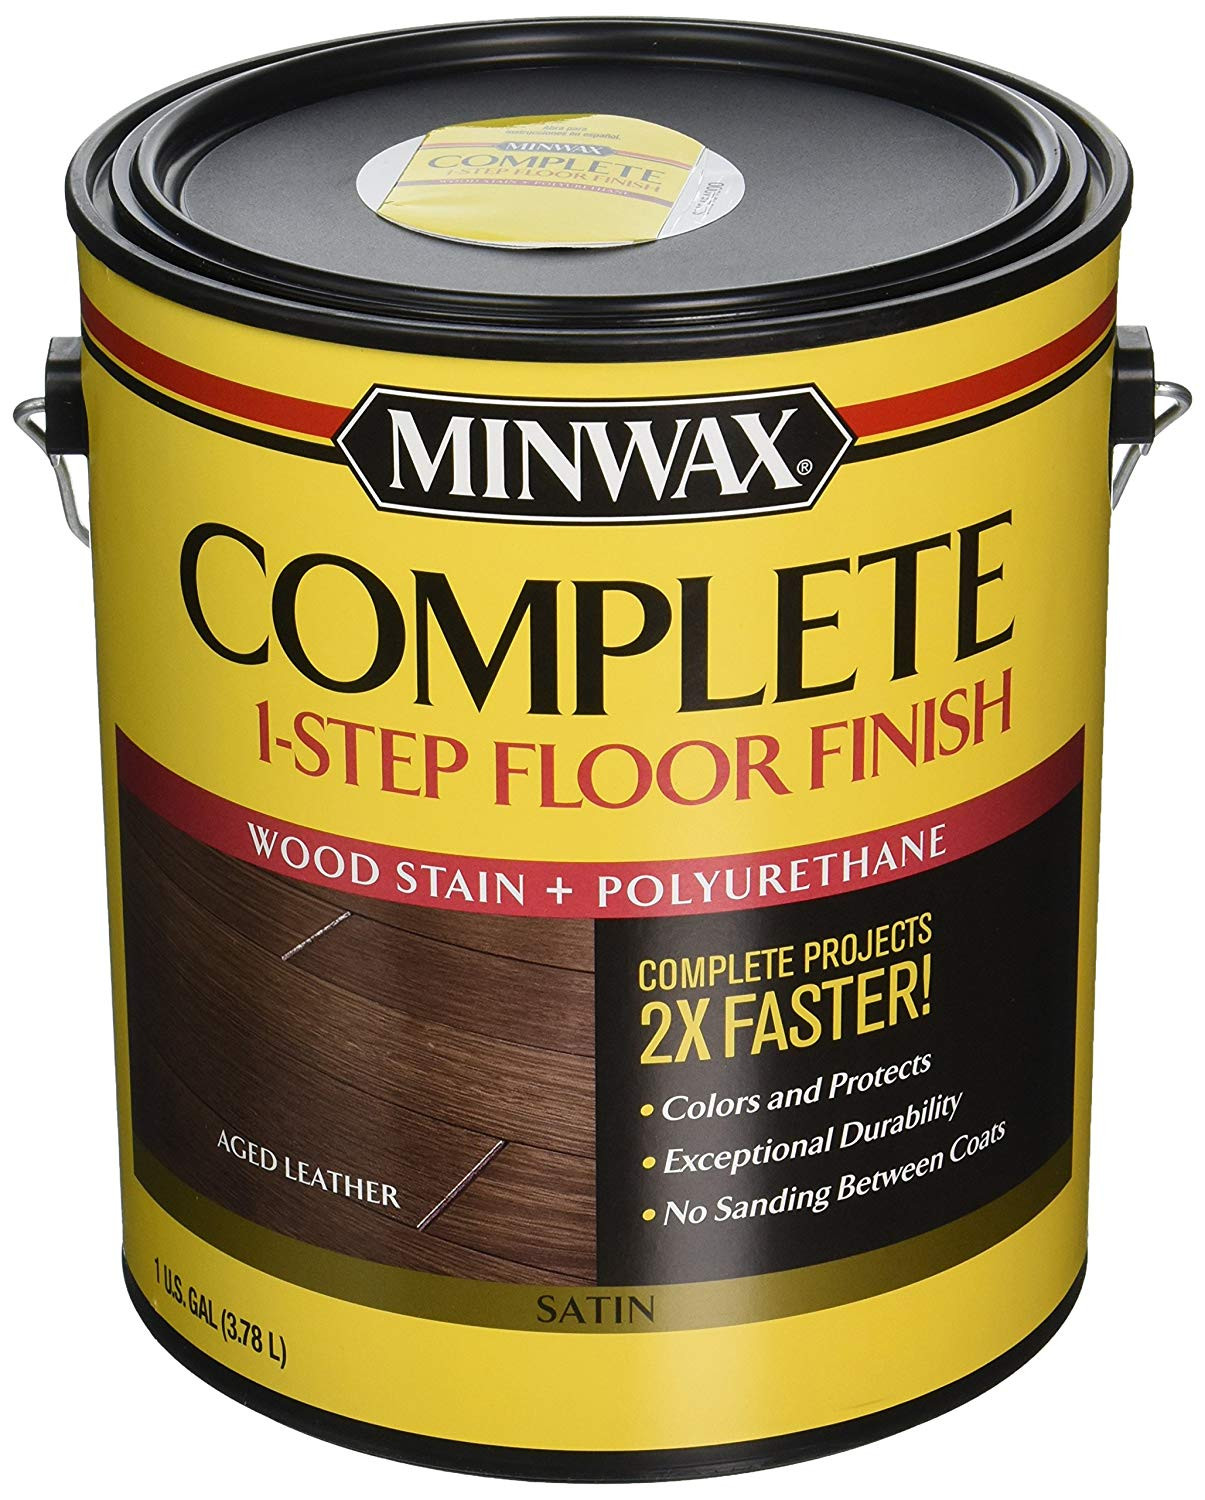 Best Hardwood Floor Finish for Pets Of Minwax 672050000 67205 1g Satin Aged Leather Complete 1 Step Floor within Minwax 672050000 67205 1g Satin Aged Leather Complete 1 Step Floor Finish Amazon Com